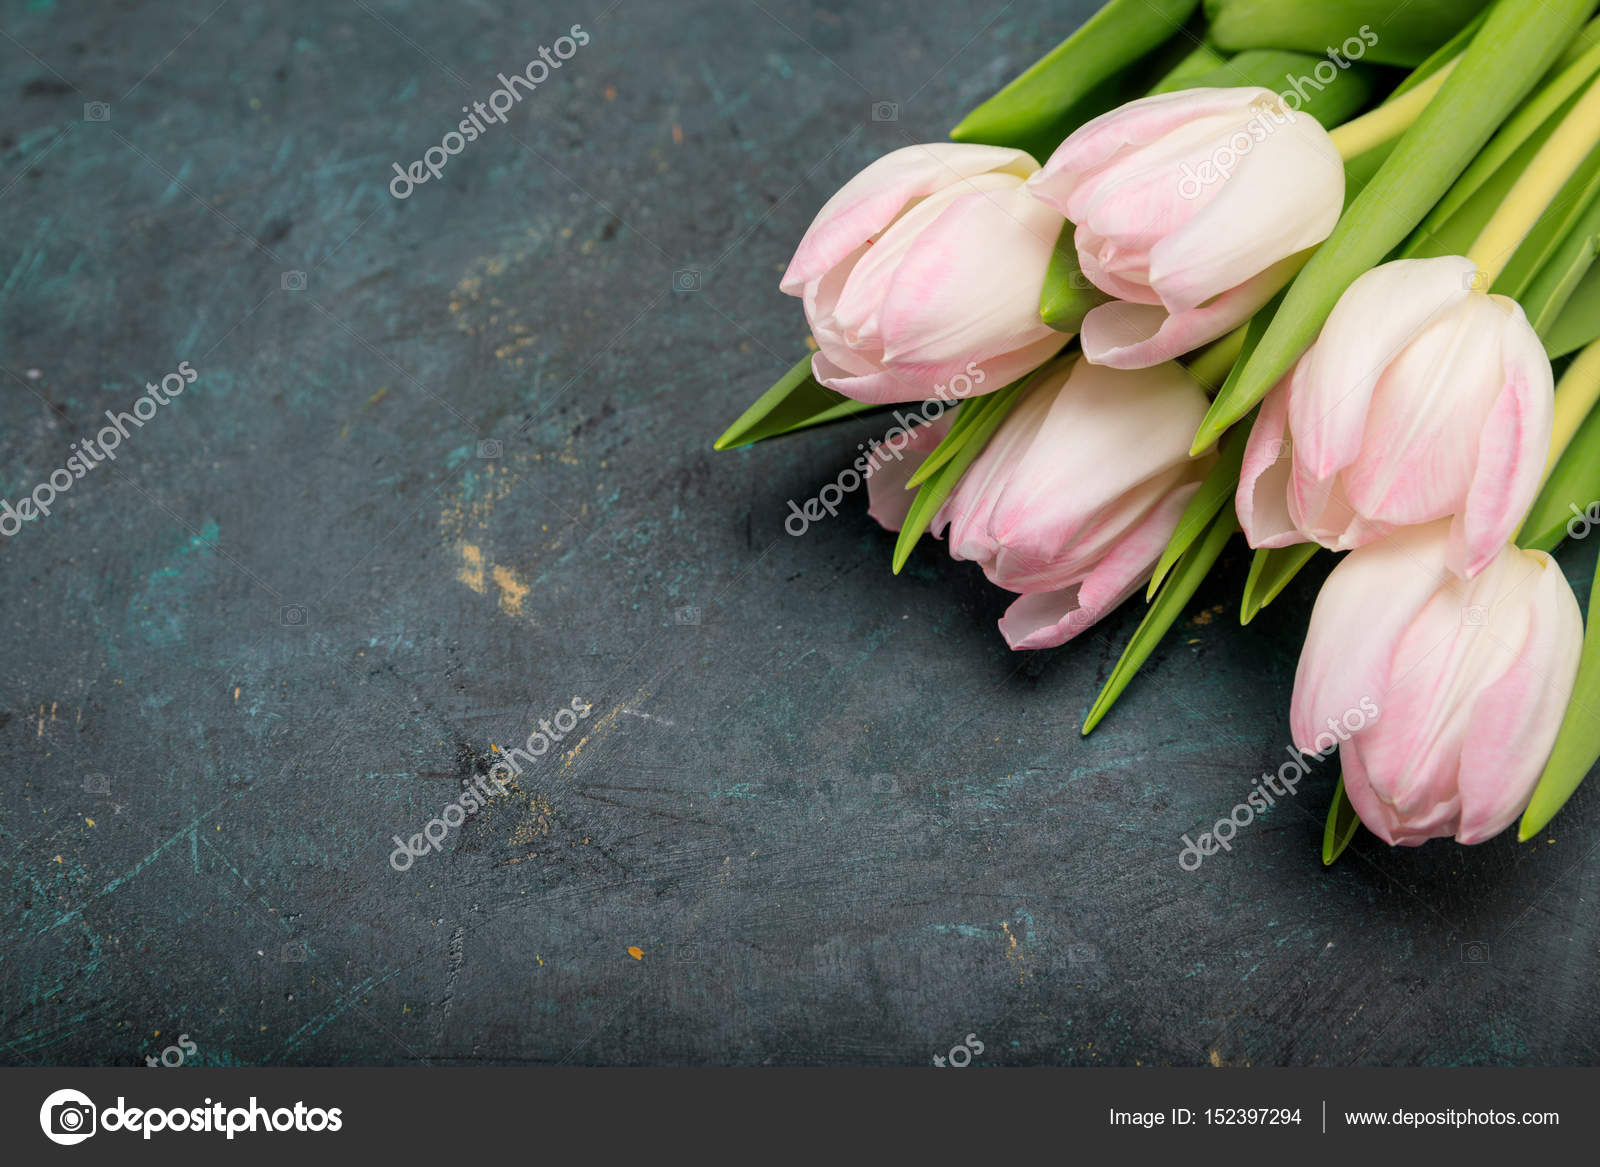 Artistic Flowers Pictures Artistic Flowers Stock Photos Images Depositphotos